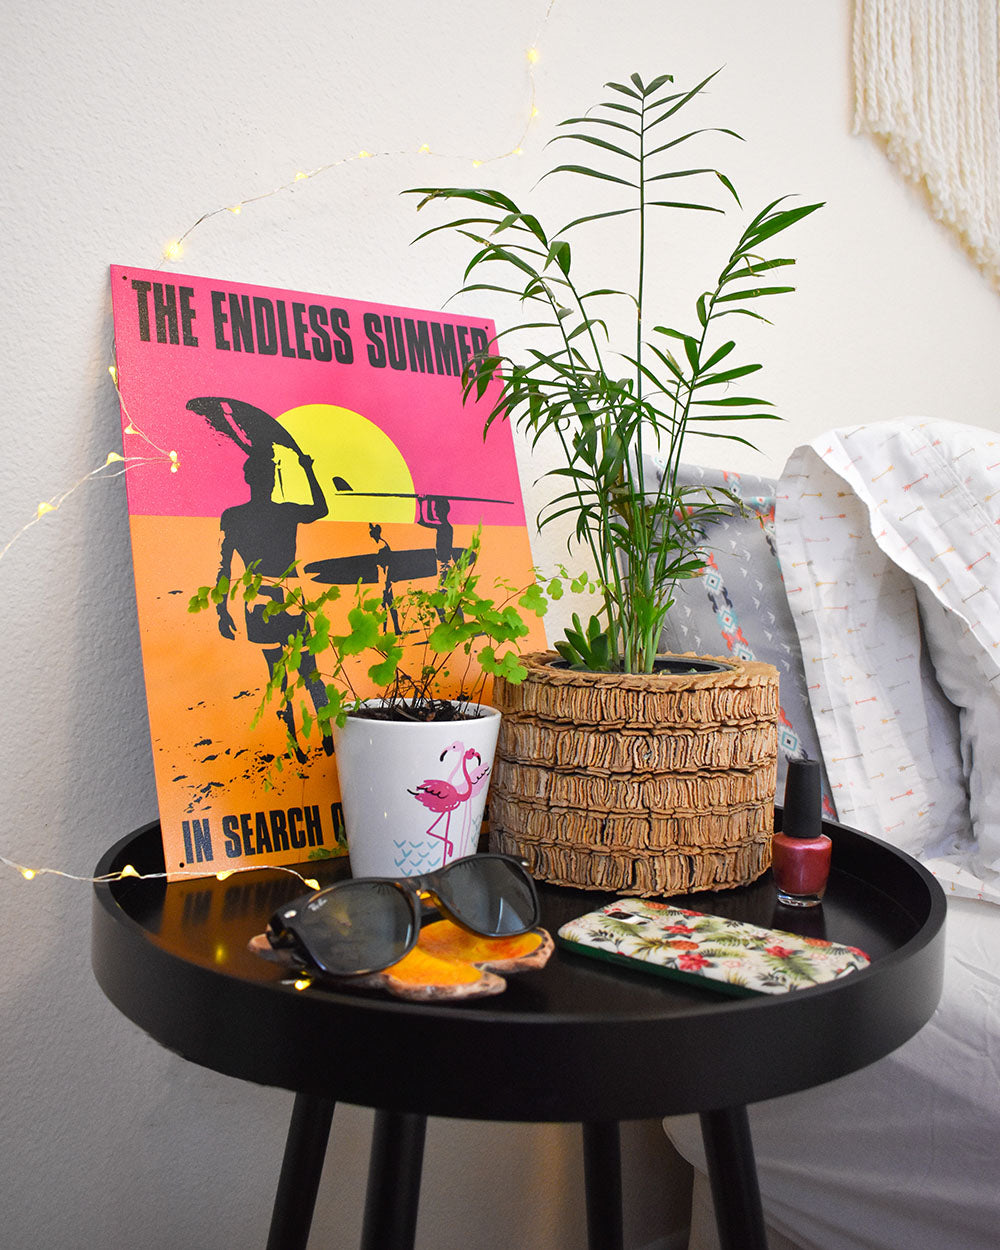 A bedside table is perfect for keeping those must have items close at hand like your cell phone as well as an easy-care houseplant. Plants are perfect for the dorm room, adding beauty, fresh oxygen to purify the air, and providing natural stress relief for the hectic college life.